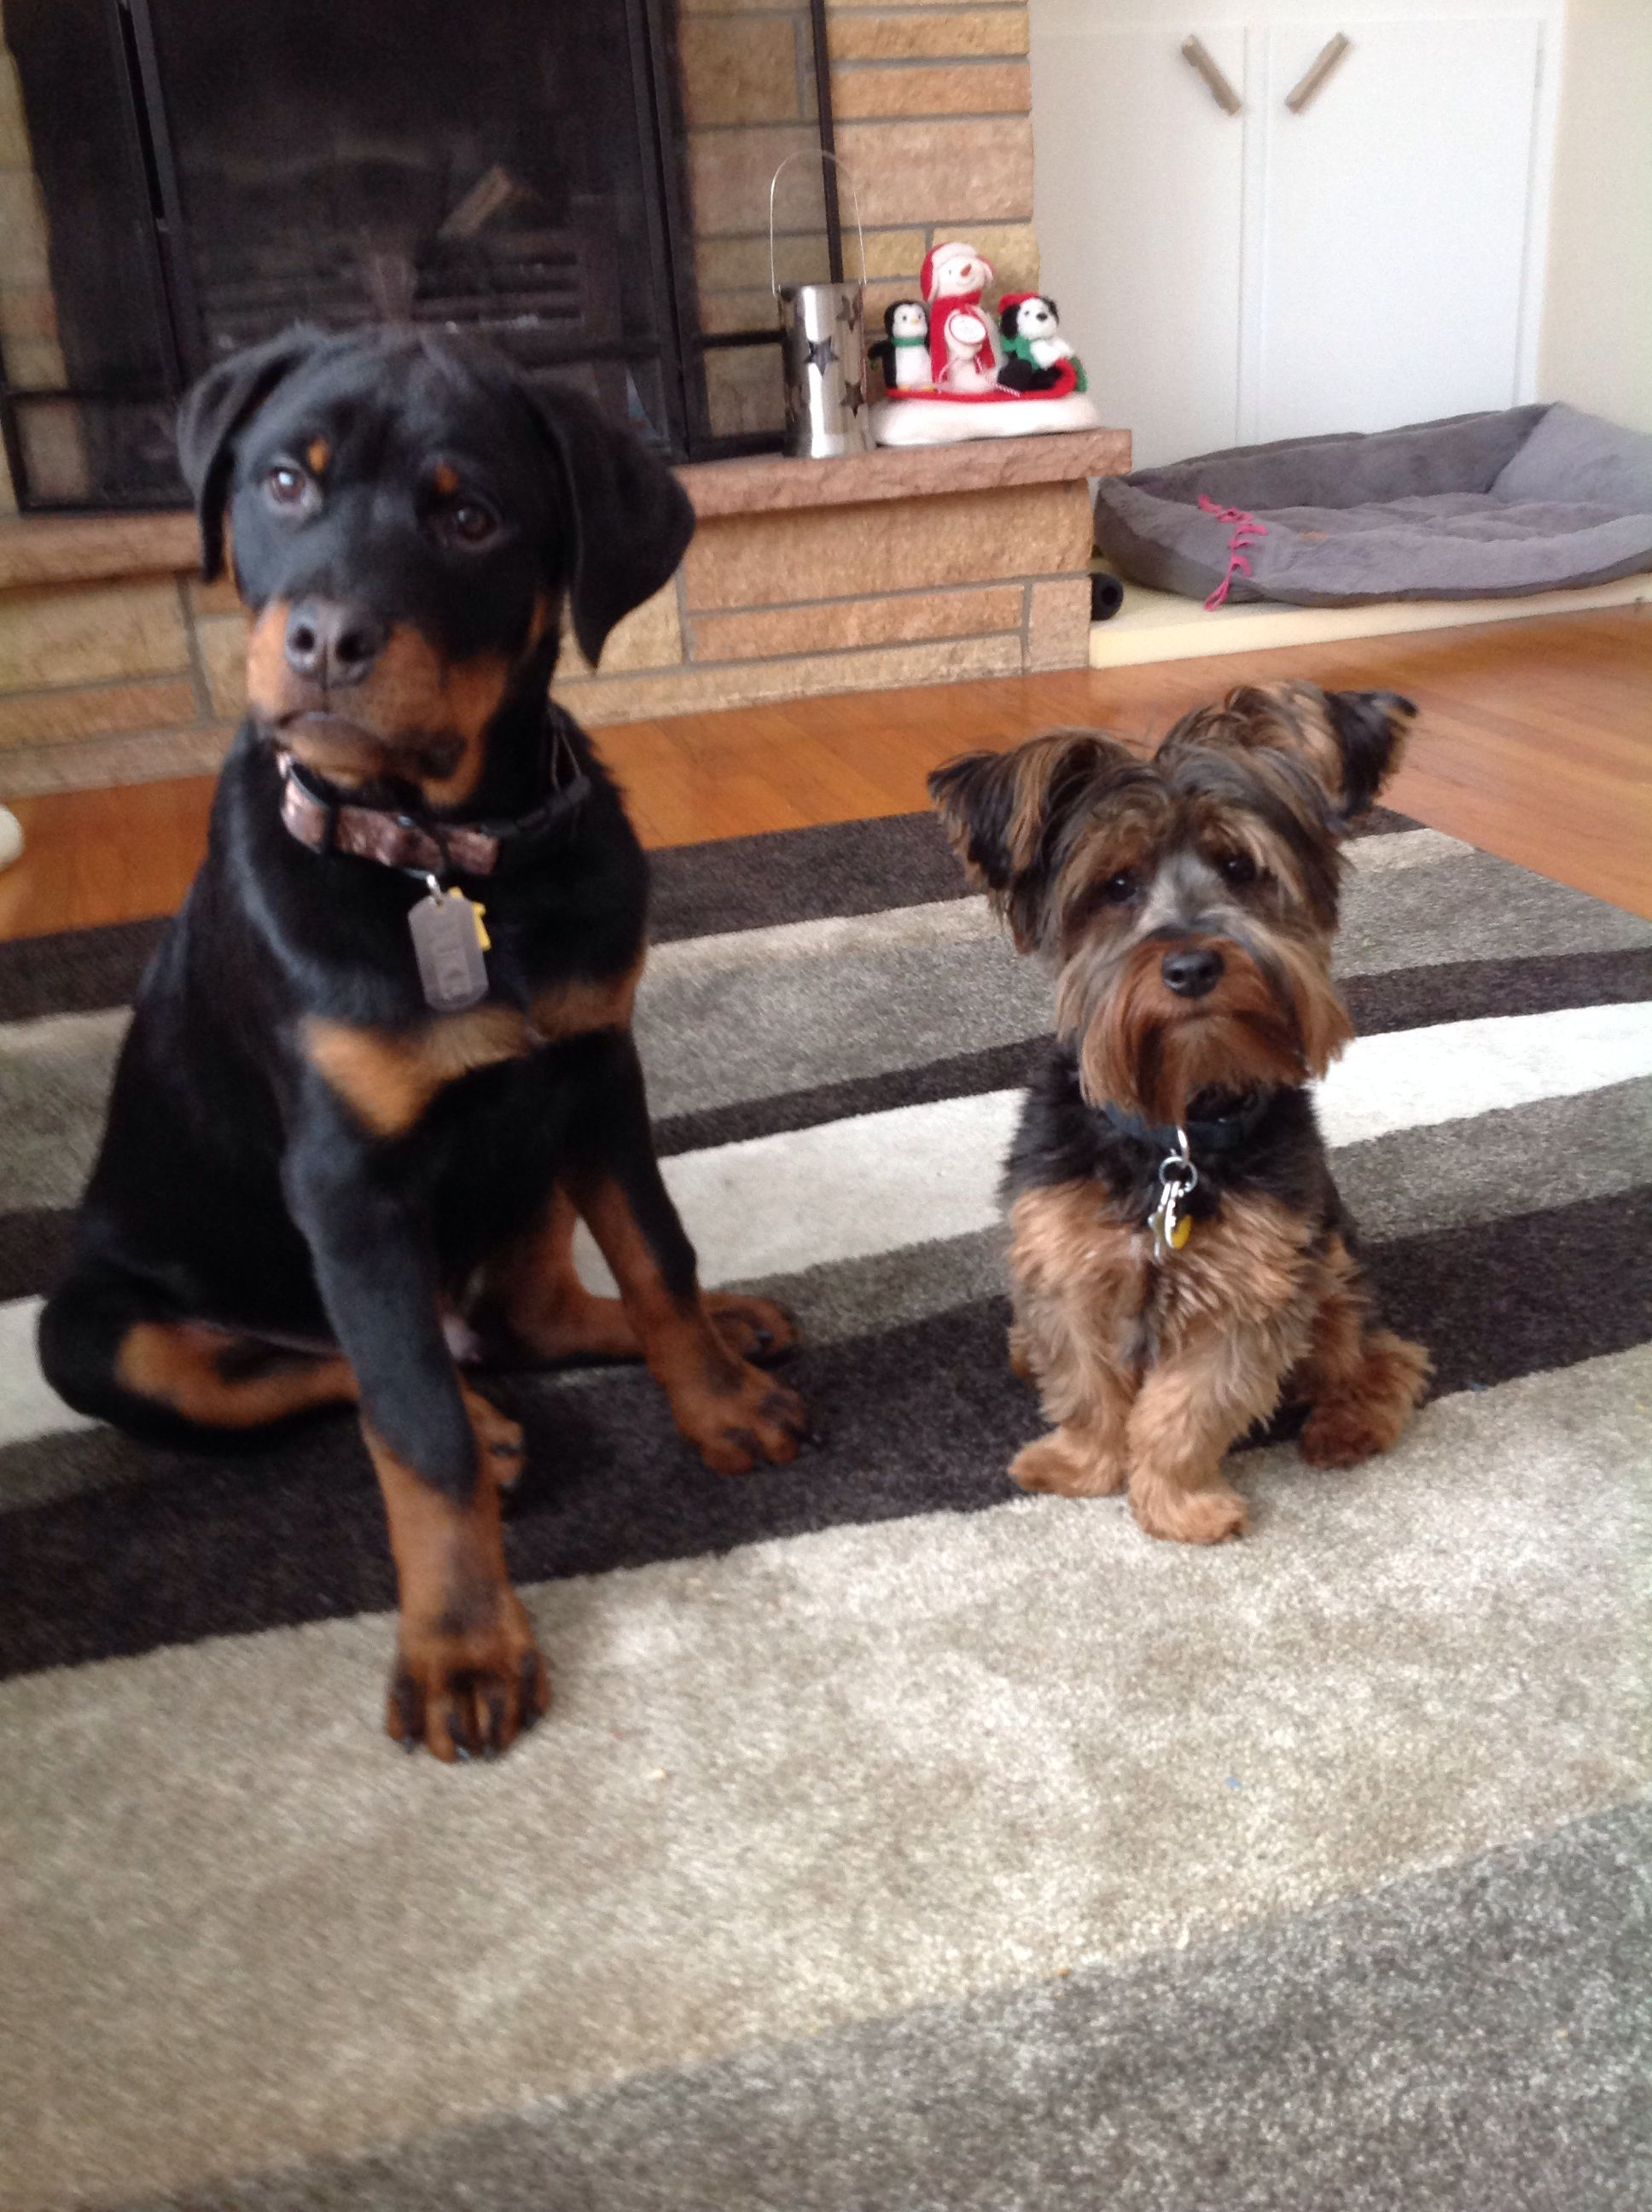 Best Friends Puppies Yorkie Rottweiler Cute Animals